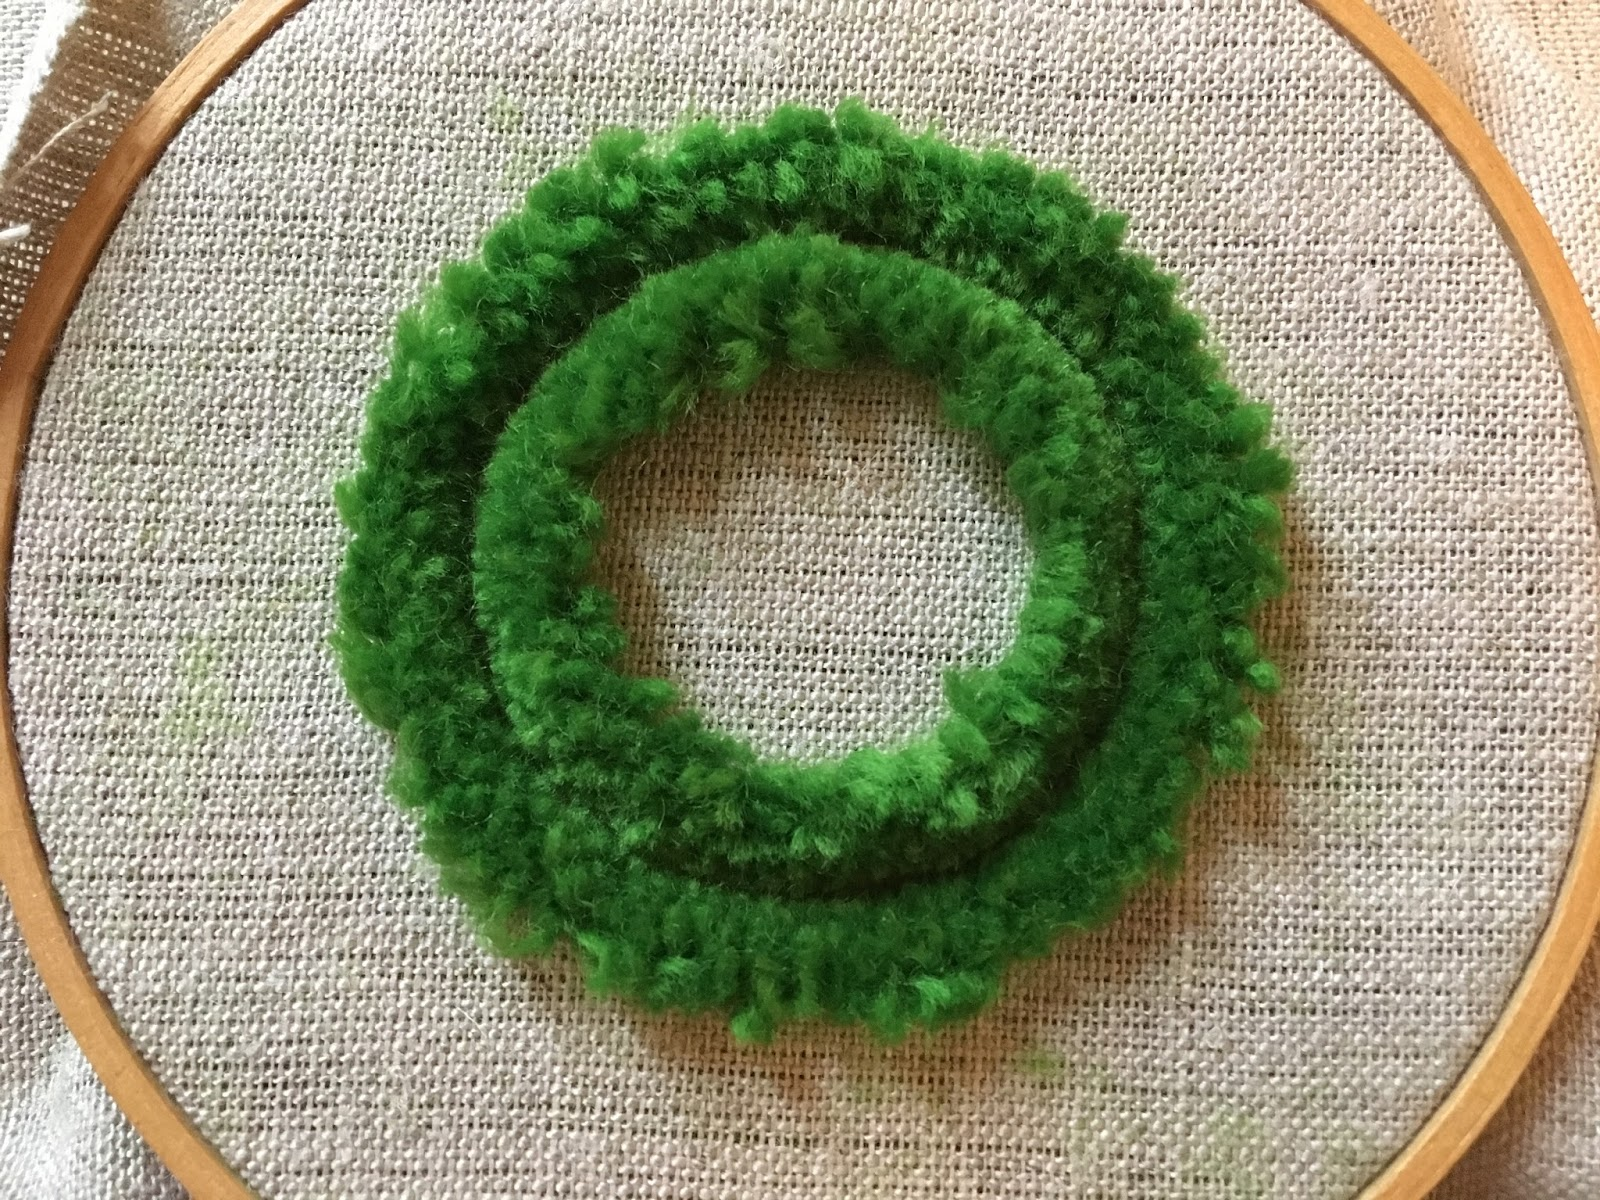 Plushwork Wreath tutorial by Michelle for Mooshiestitch Monday on Feeling Stitchy